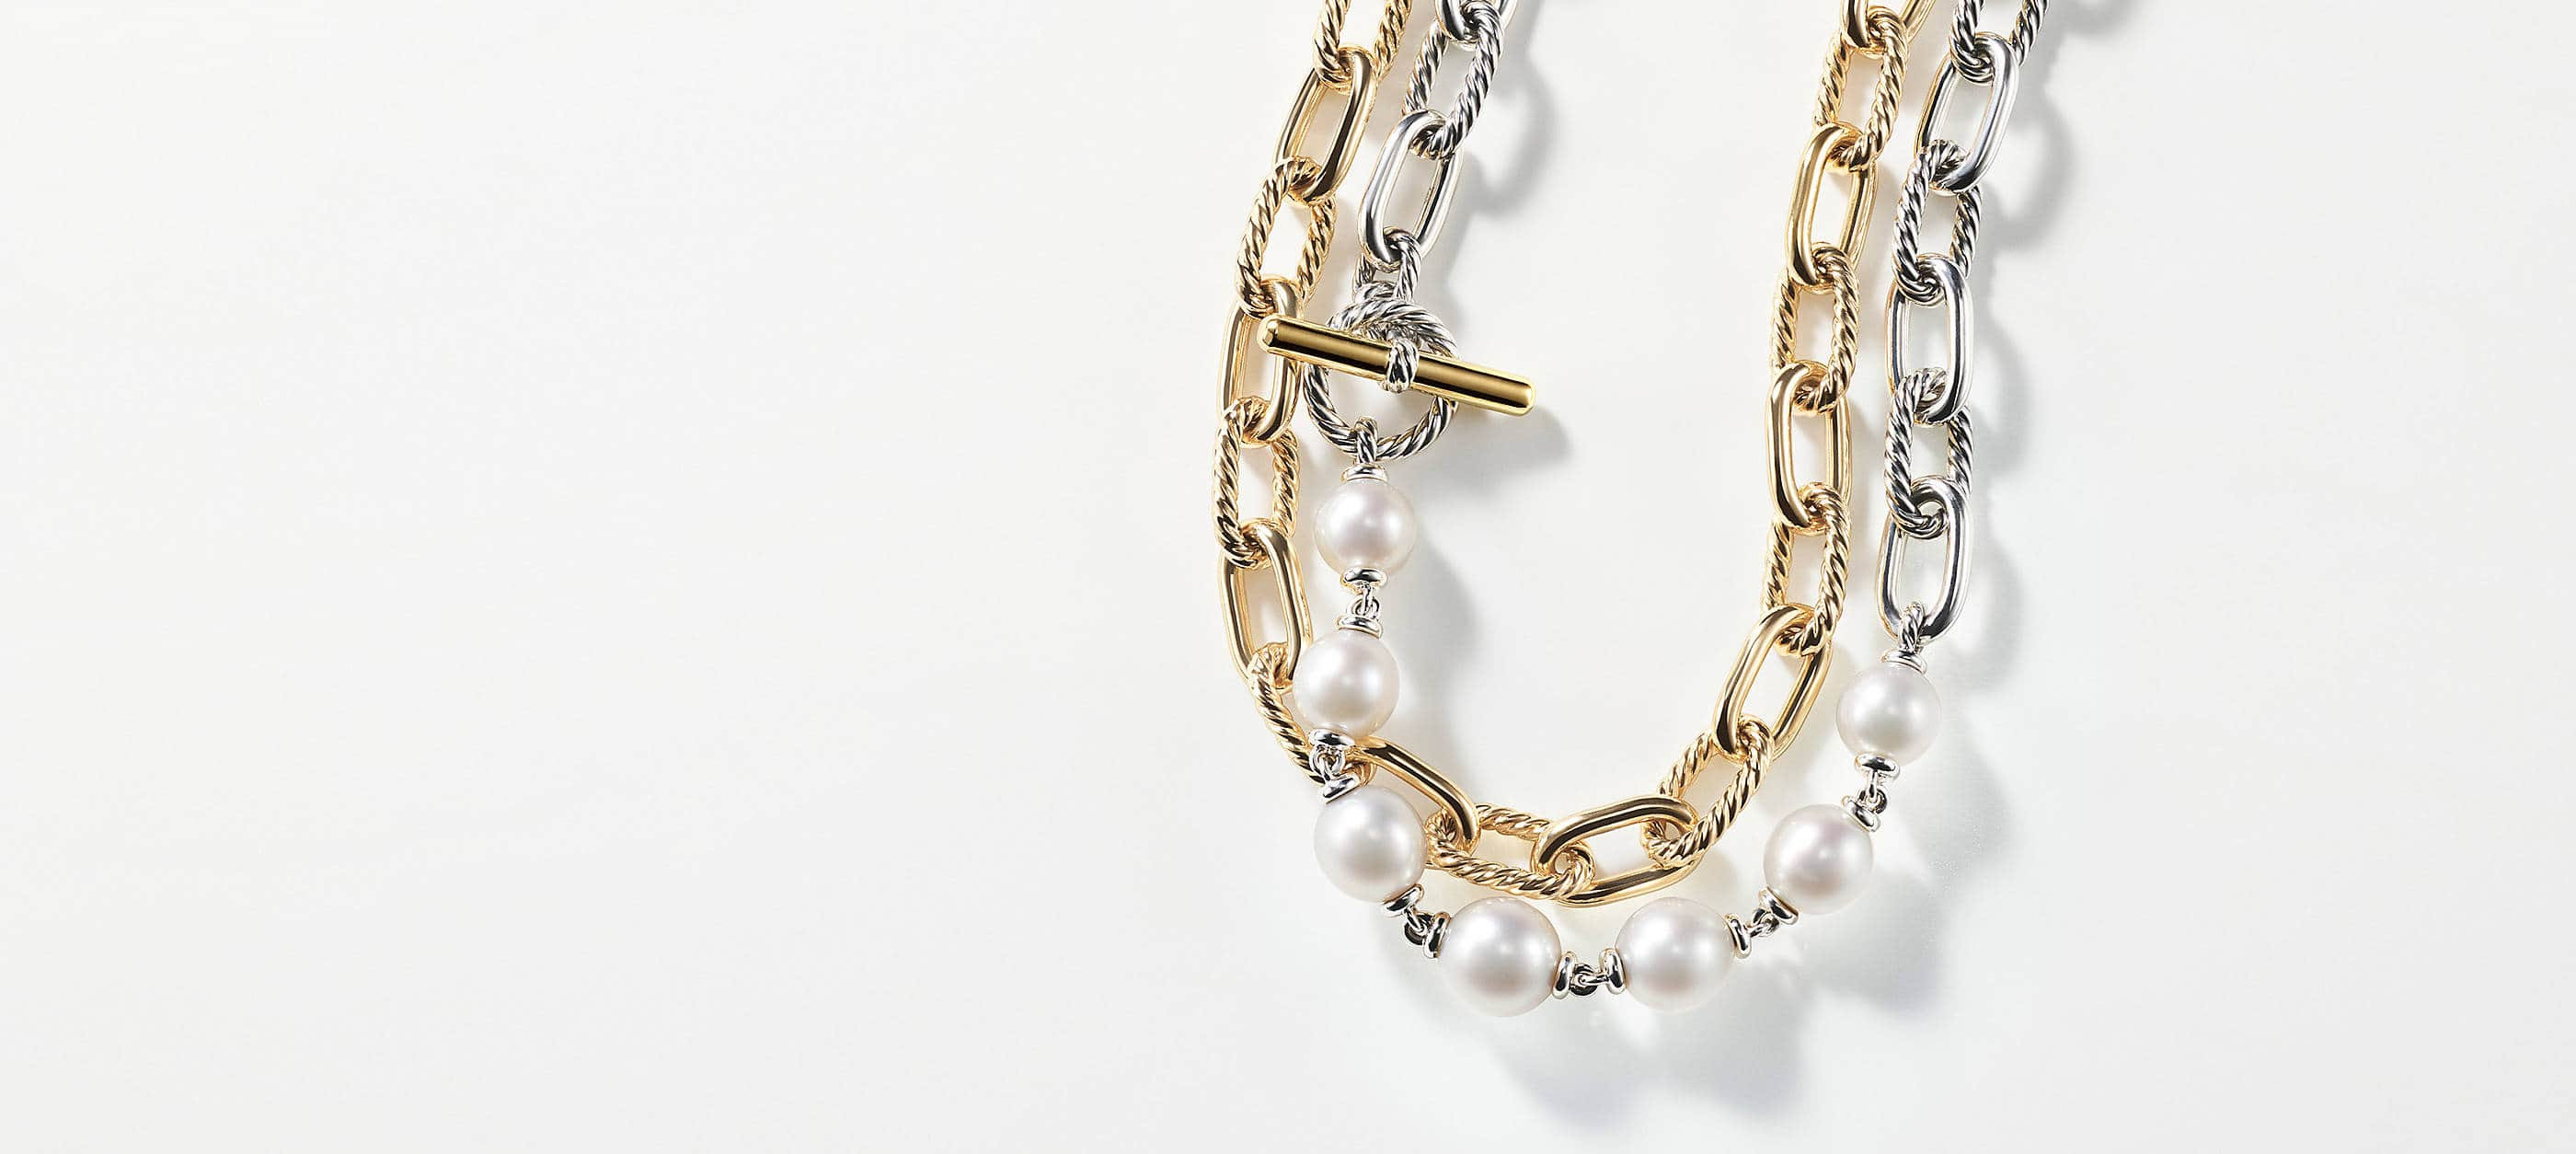 Two David Yurman chain necklaces overlapped atop a white background with soft shadows from the jewelry. The women's jewelry is crafted from 18K yellow gold or sterling silver with an 18K yellow gold toggle. The mixed metal necklace features cultured pearls near the center.